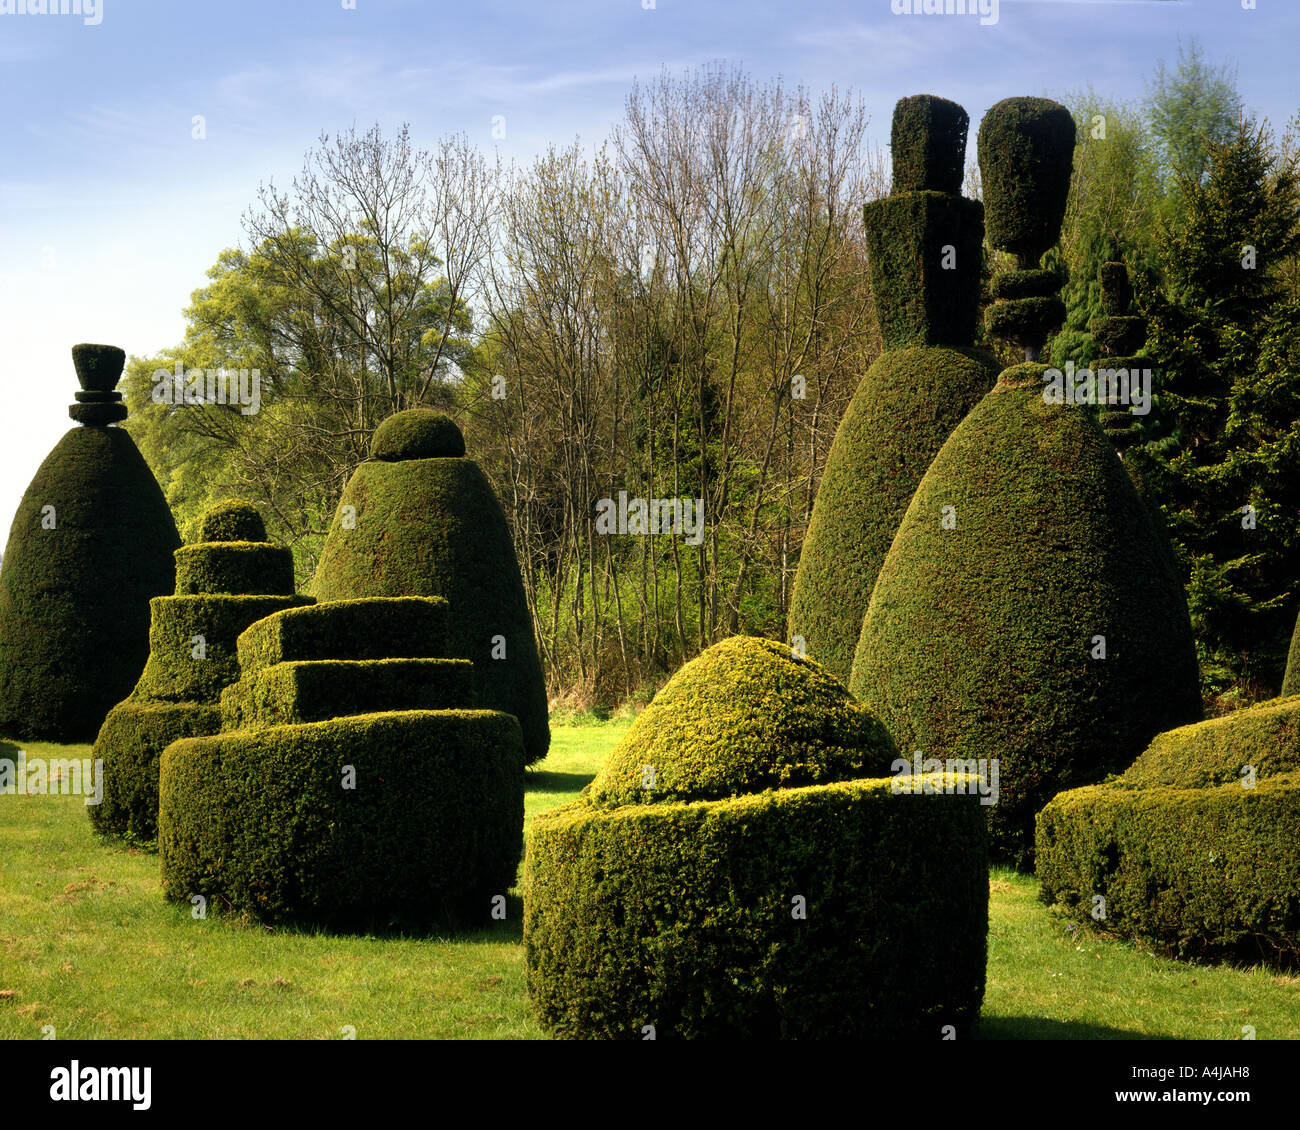 GB - RUTLAND:  Clipsham Yew Tree Avenue Stock Photo